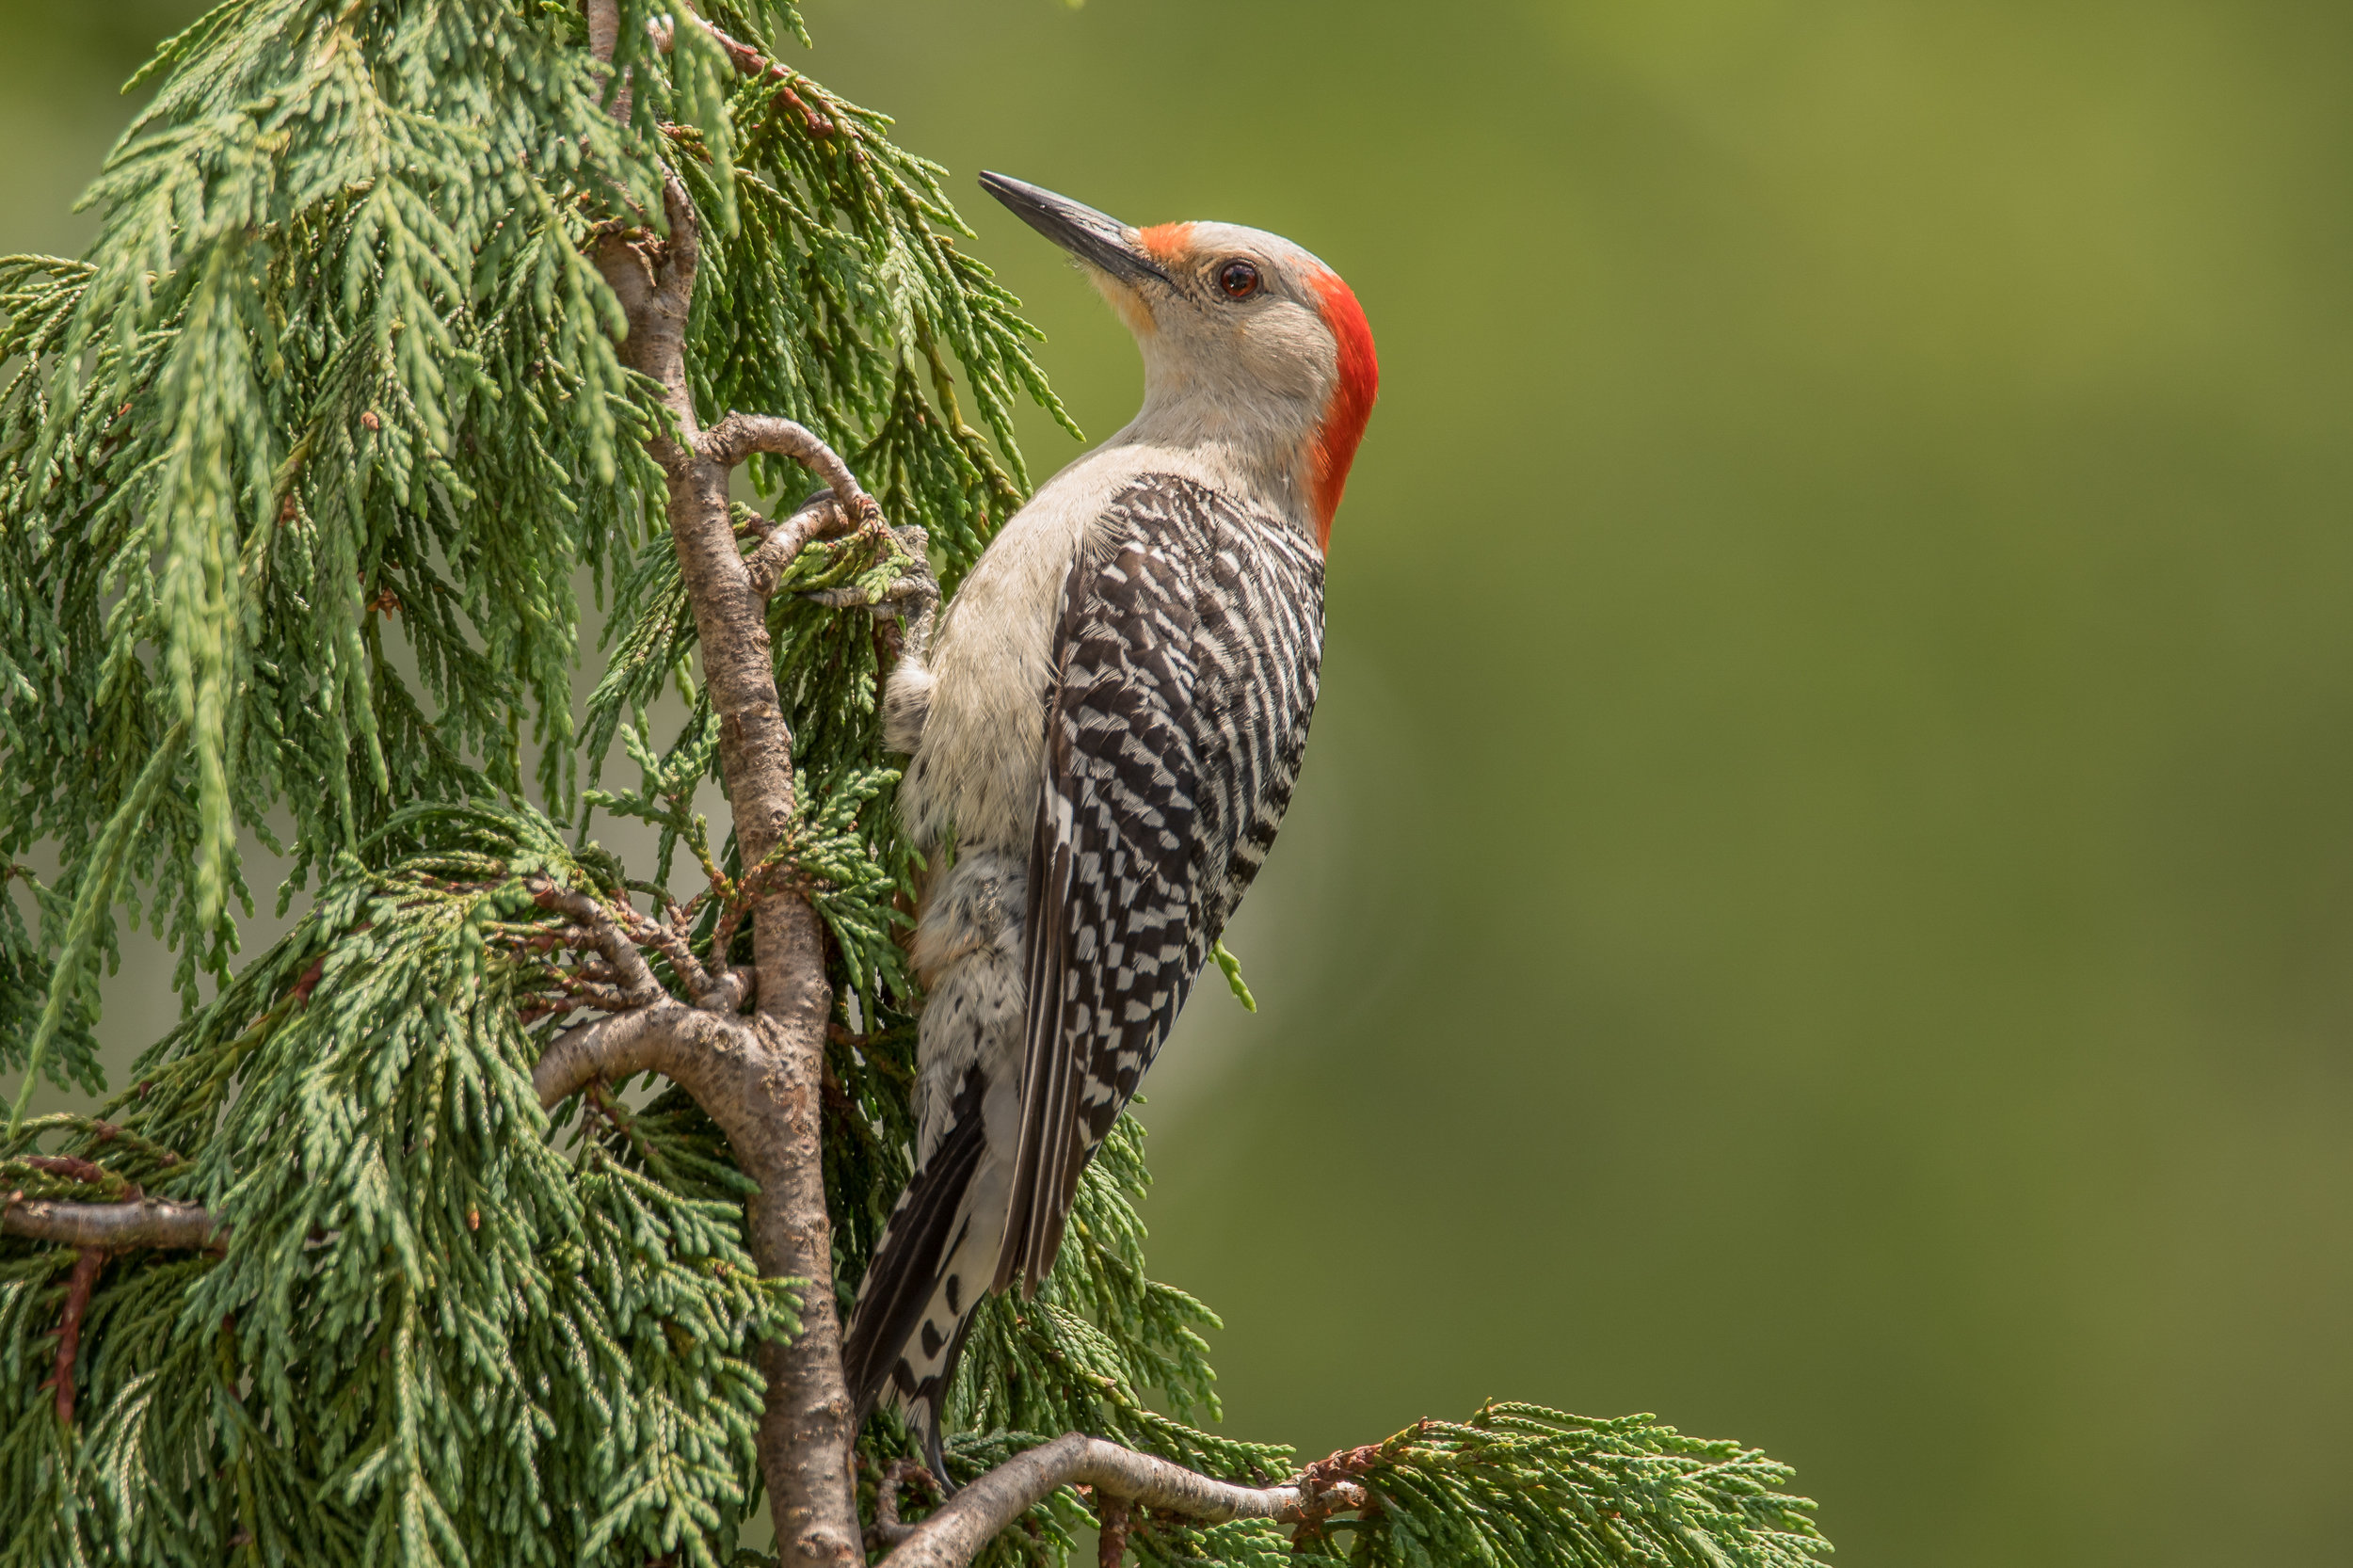 Red-breasted Woodpecker